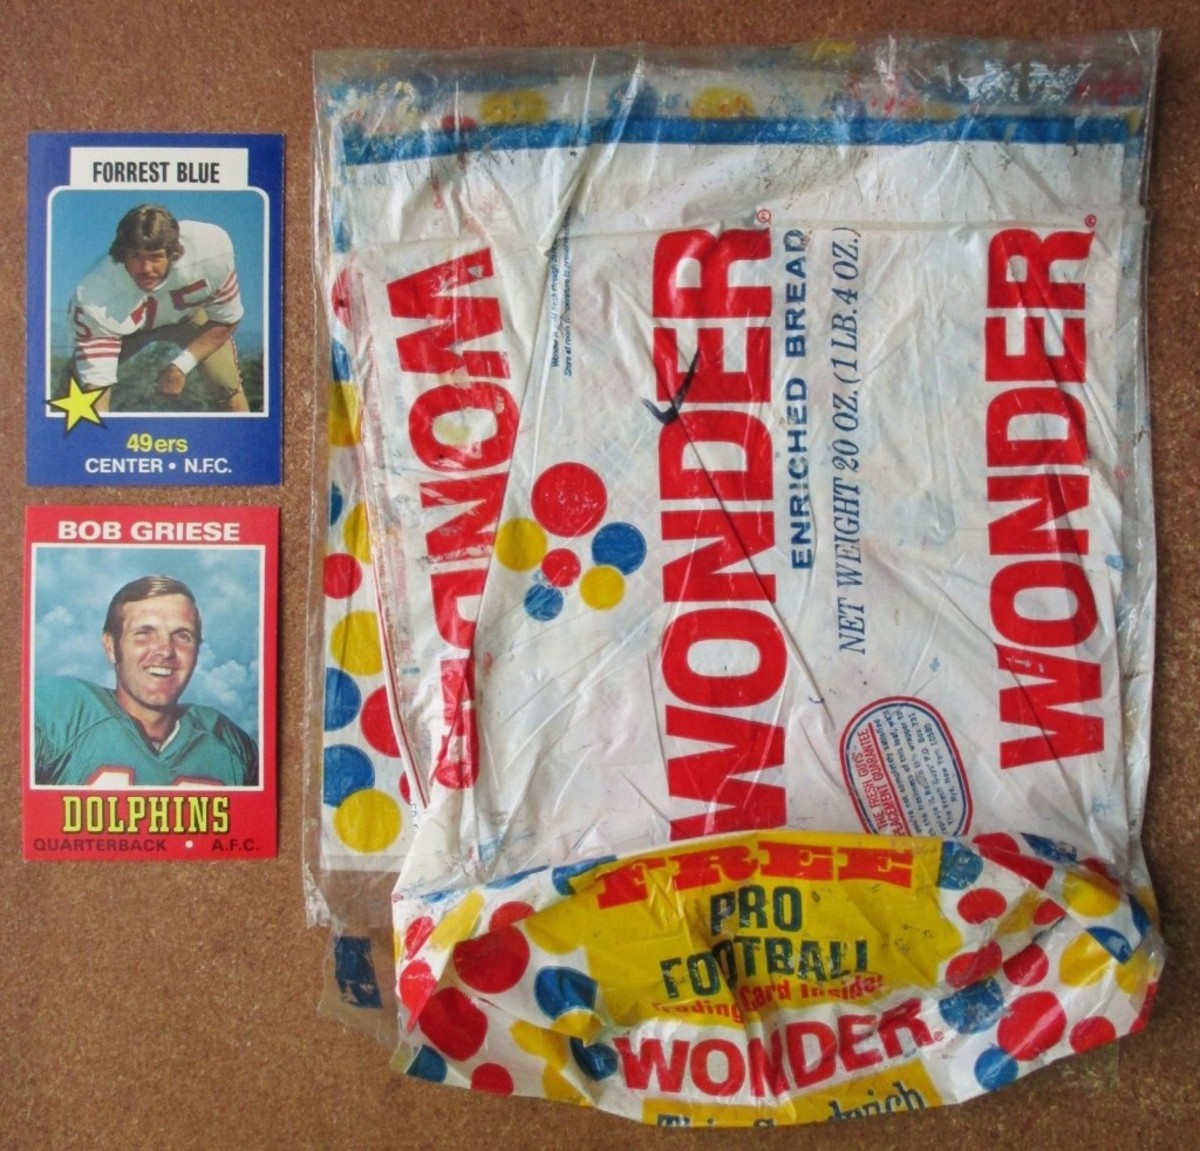 From 1974-76, fans could find football cards produced by Topps in packages of Wonder Bread. Photo courtesy Mike Mosier of Columbia City Collectibles